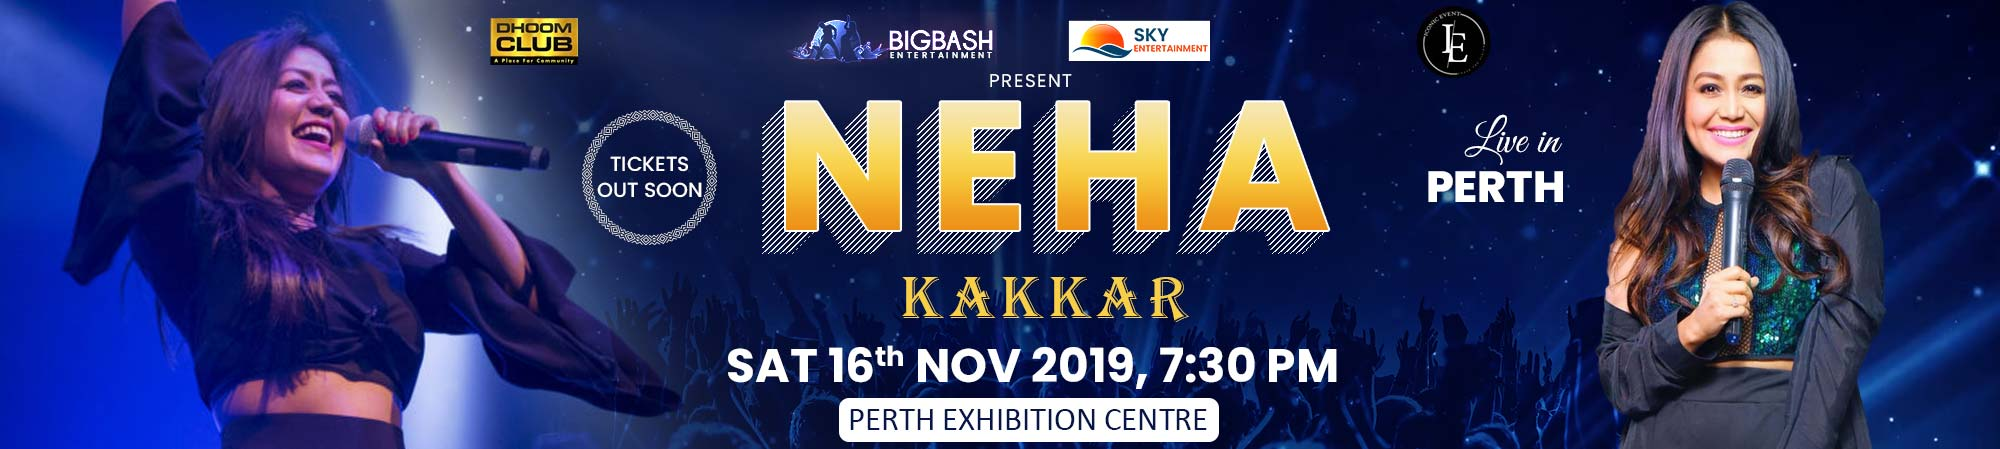 Selfie Queen Neha Kakkar Live in Perth 2019